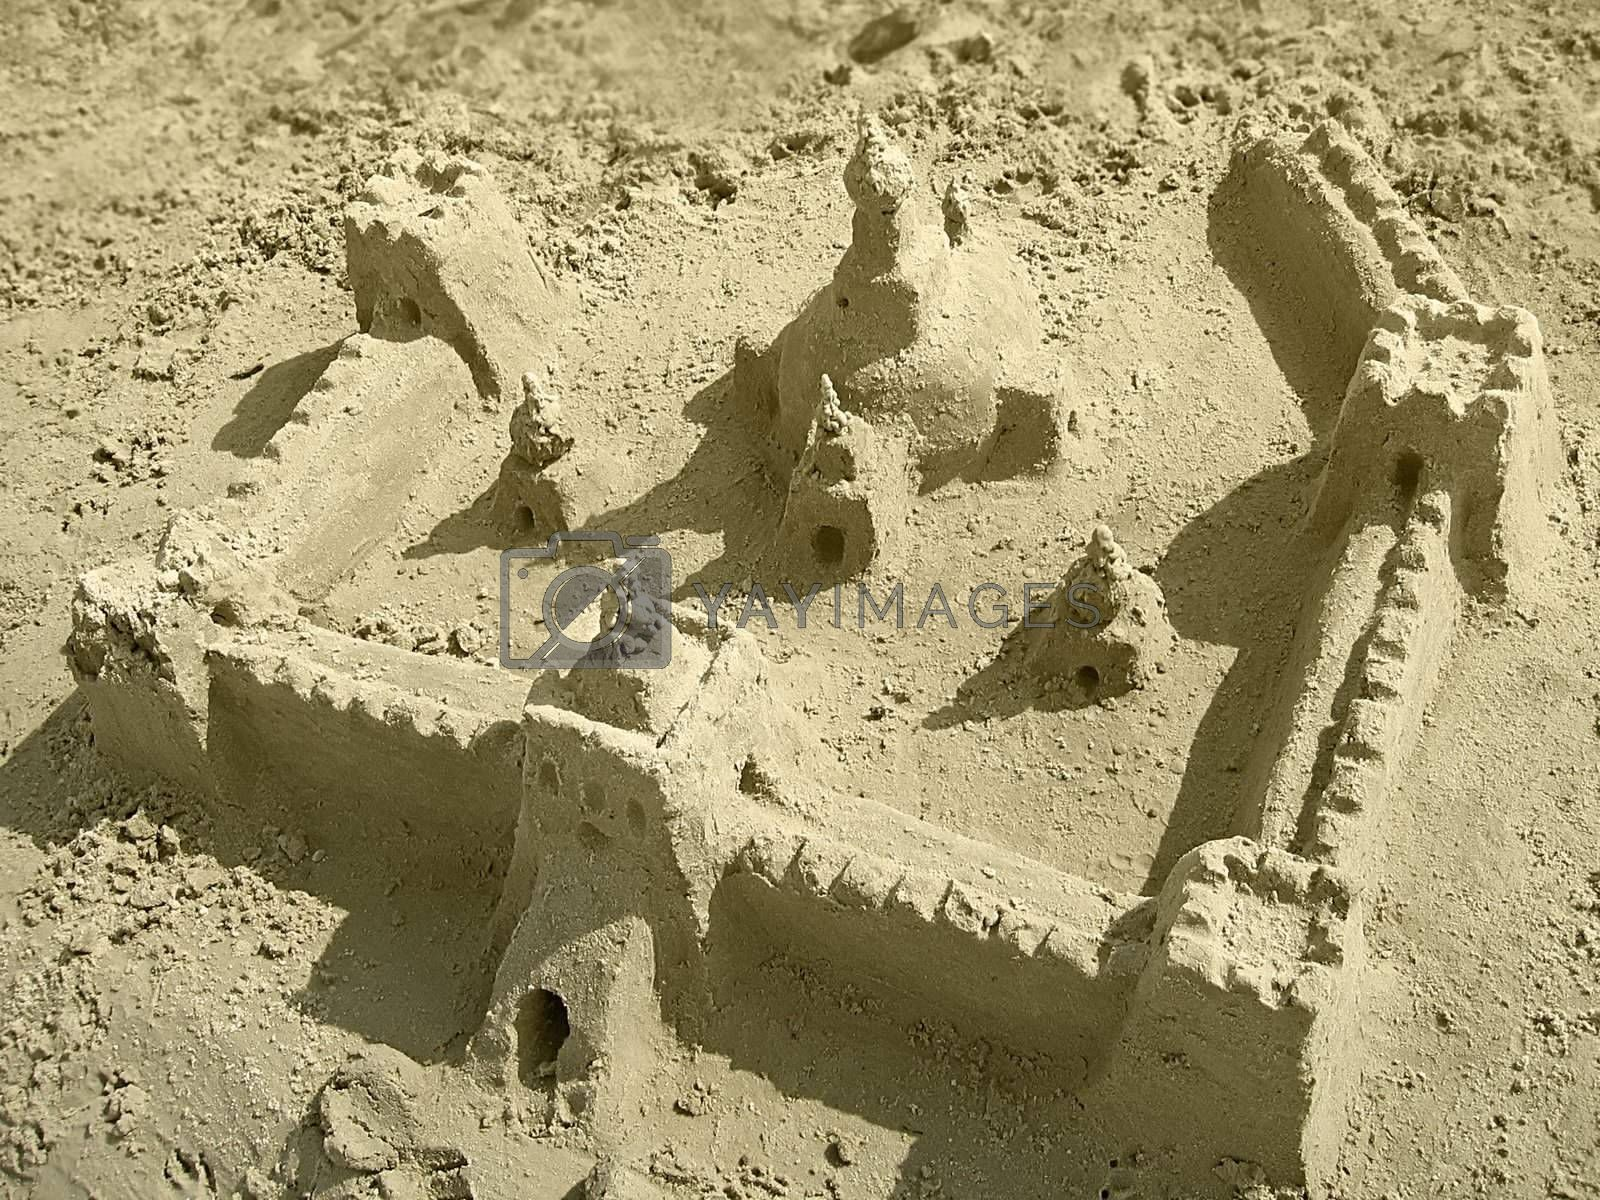 a big sandcastle with towers on the beach